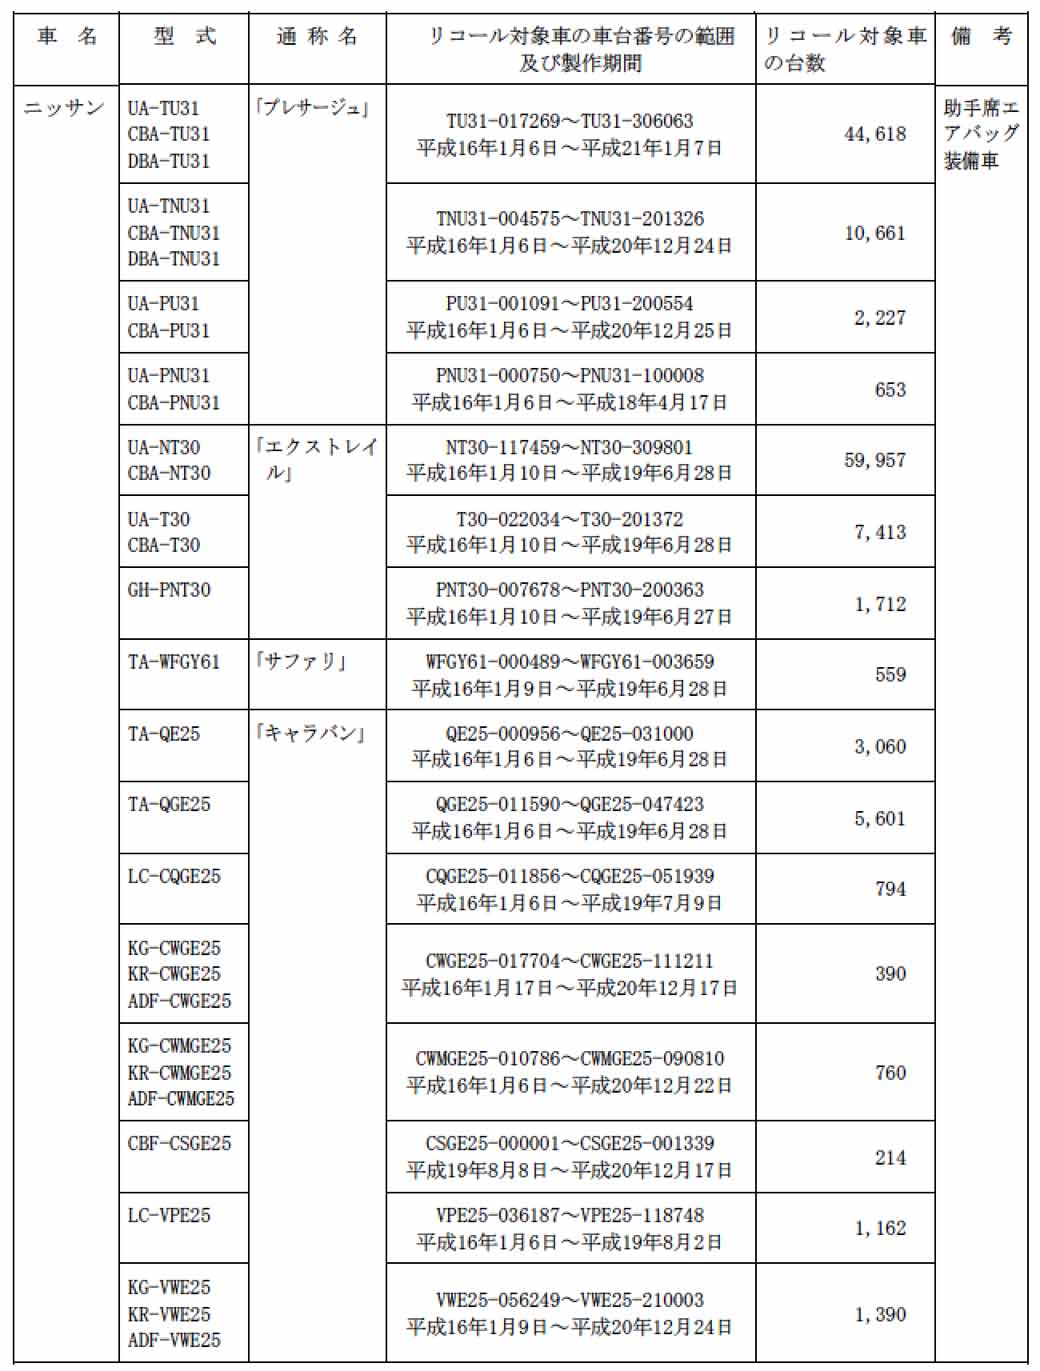 nissan-of-november-2-2015-with-recall-notification-number-3674-a-total-of-309840-units-details20151111-3